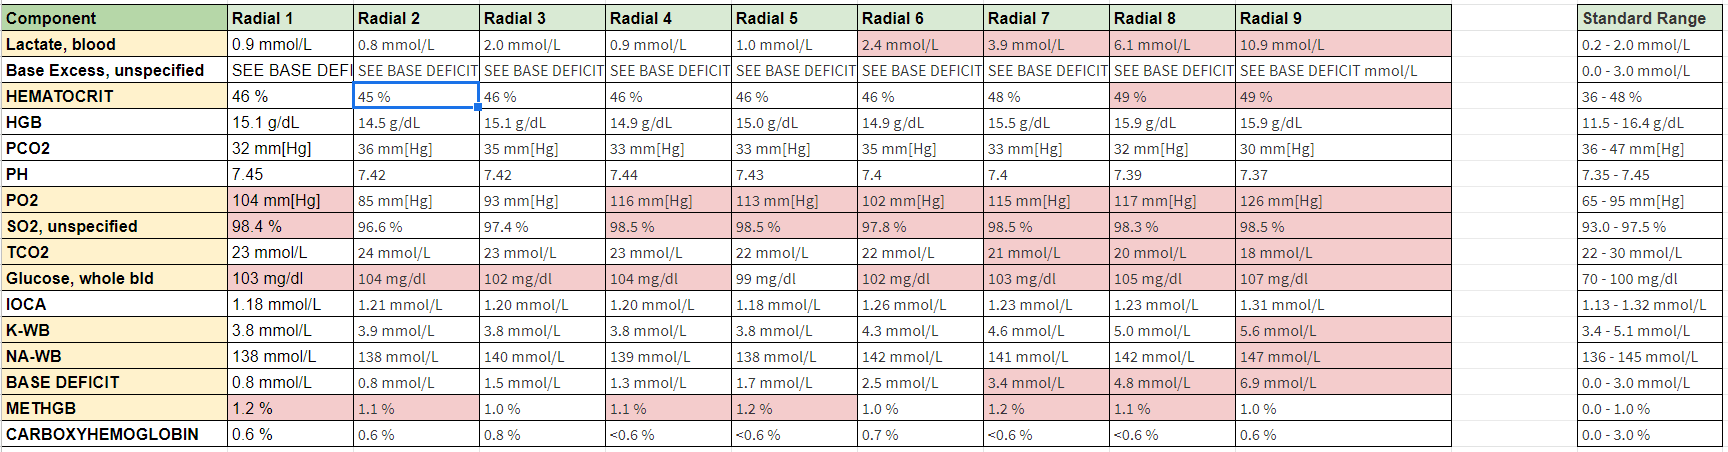 icpet blood test radial